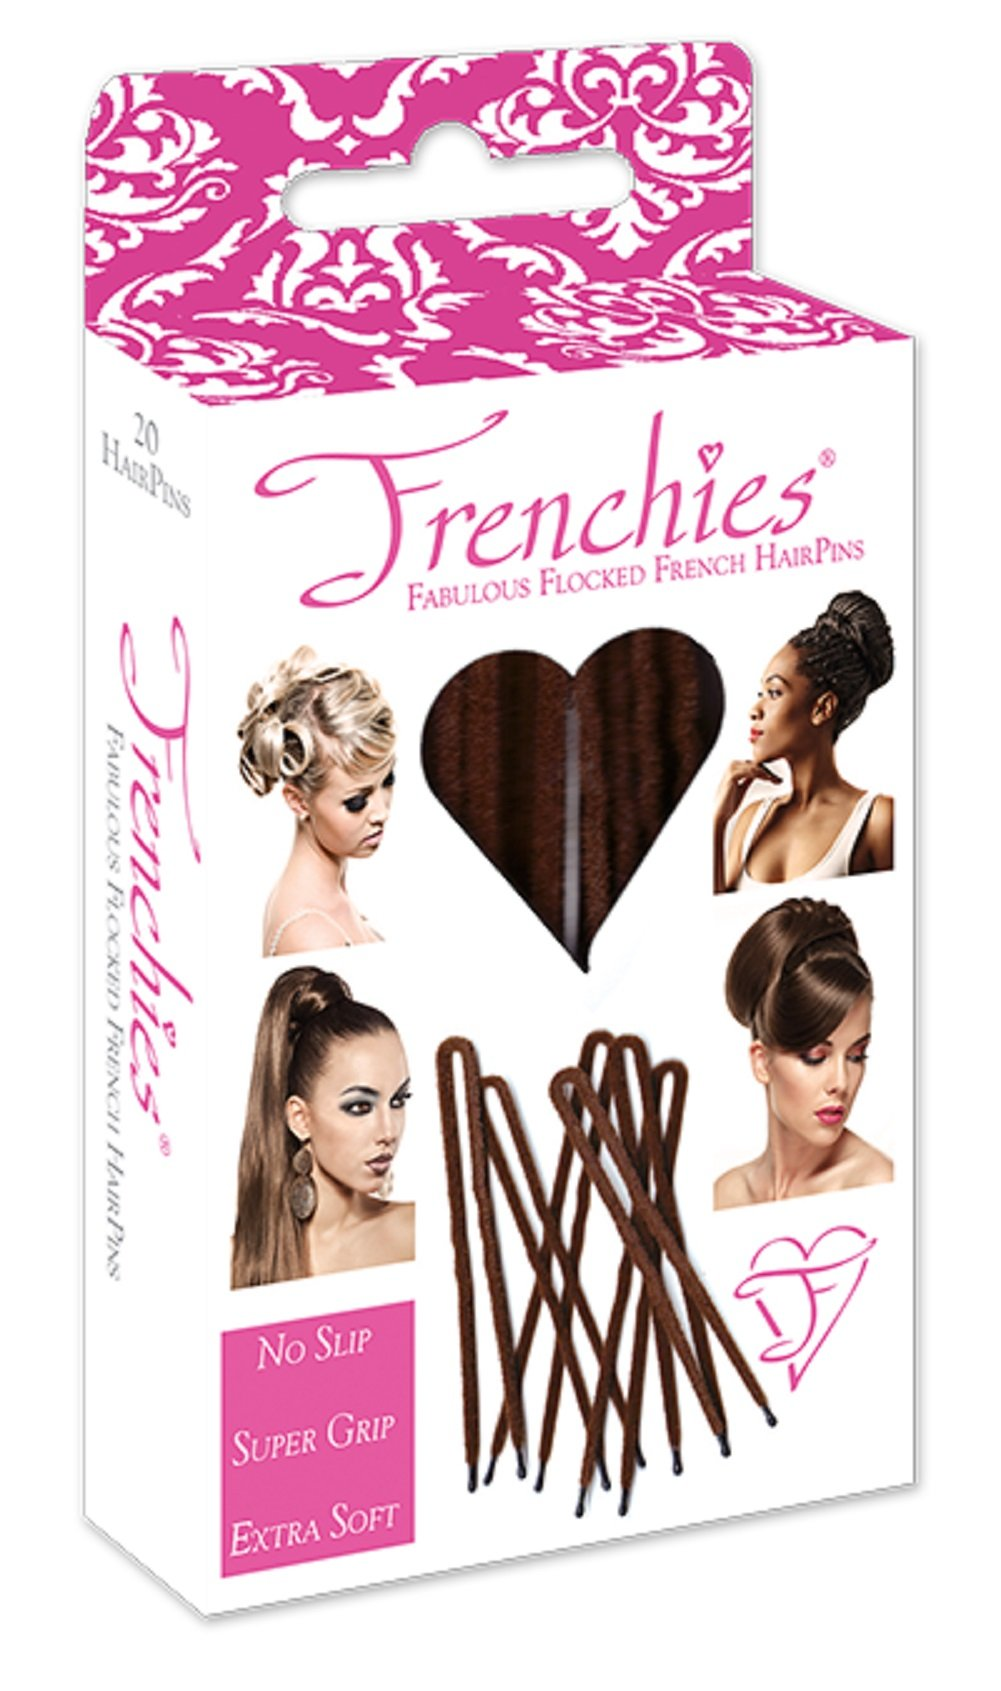 Frenchies Ultra Flocked Extra Soft French Twist Hair Pins: The French Hair Pins for Buns, Updo Hairstyles, Hair Extensions + Wigs - 20 Count Brown by Frenchies (Image #1)